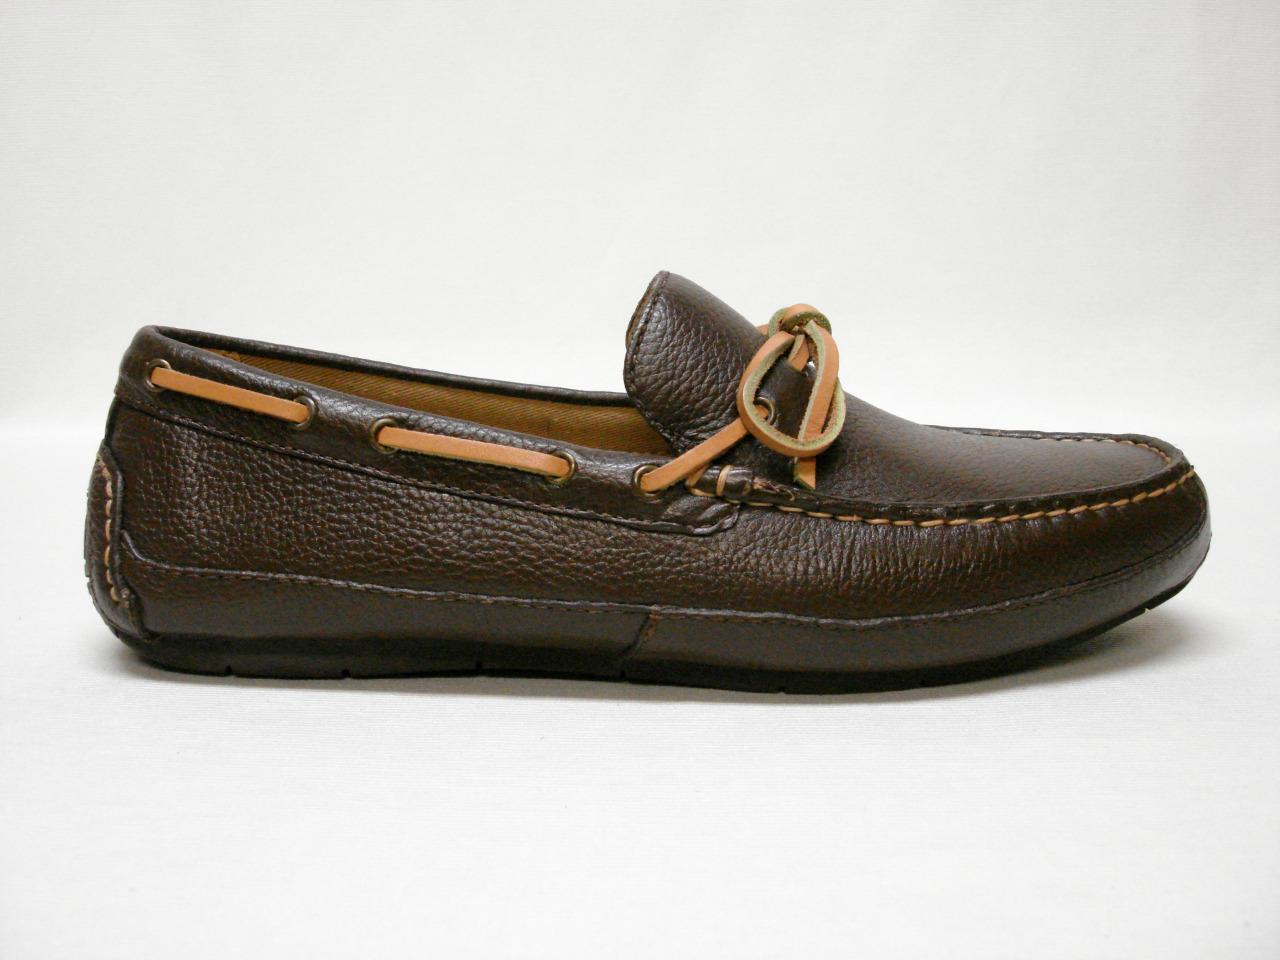 Tip cole haan halsted camp moc man without zippers shoes t mgold 8.5